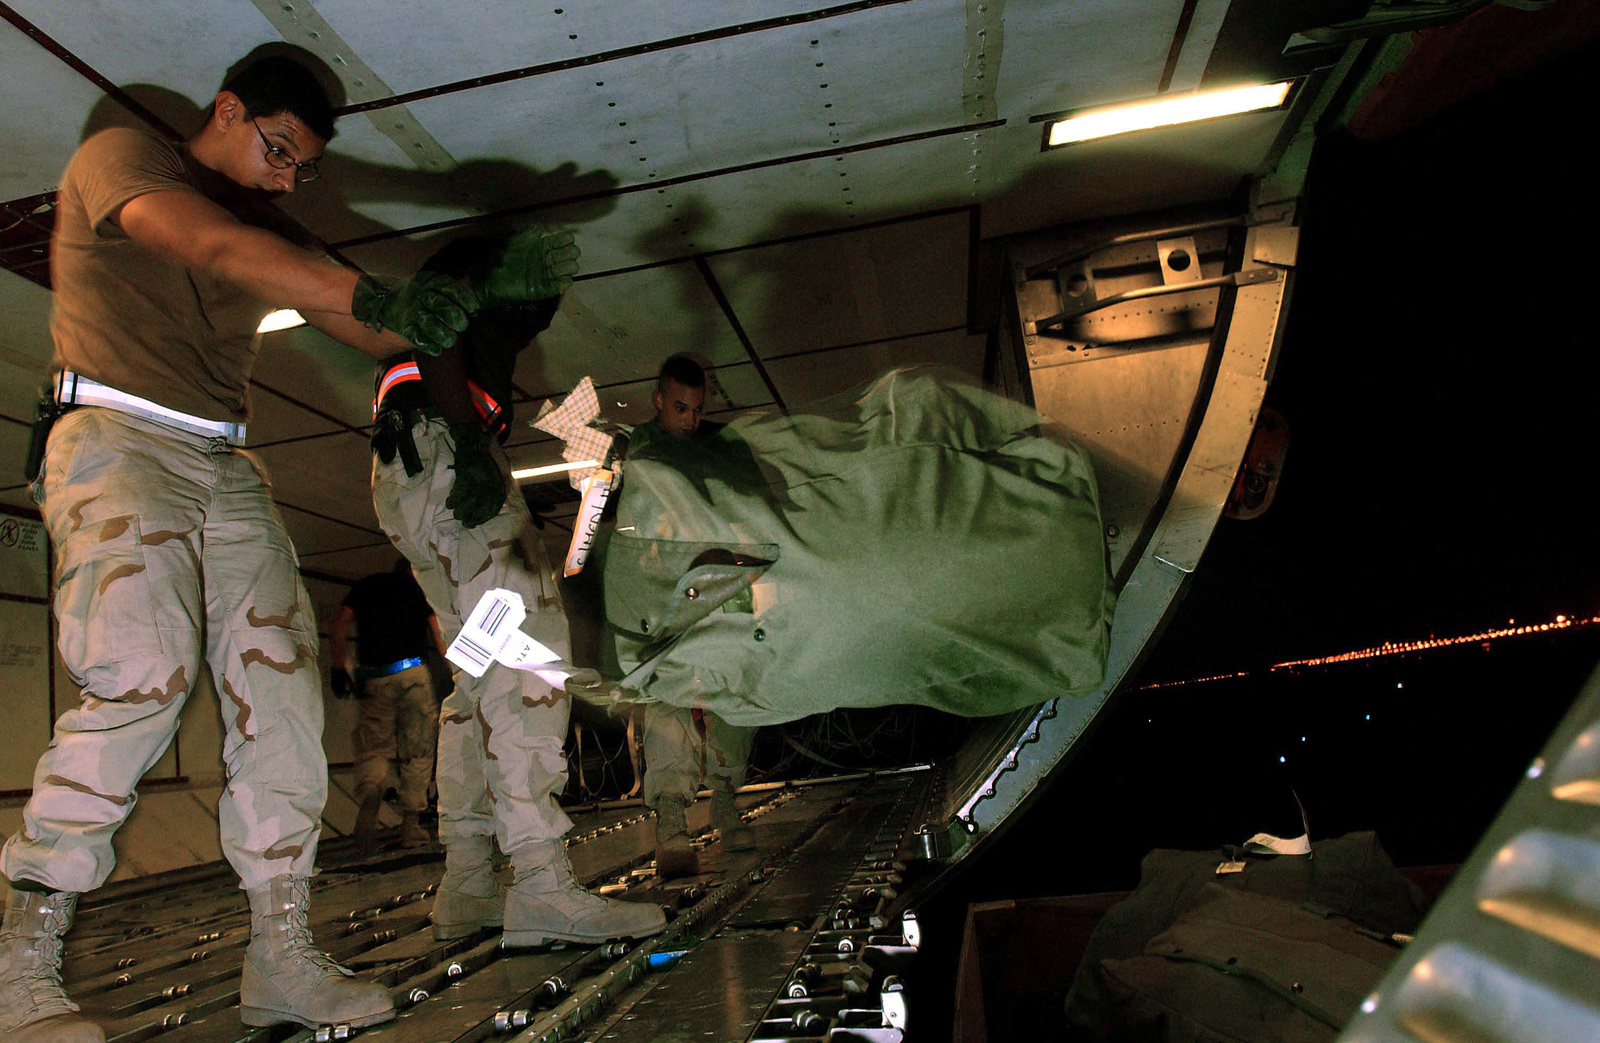 US Air Force (USAF) STAFF Sergeant (SSGT) Juan Hernandez, an Air Transportation Journeyman from the 320th Expeditionary Aerial Port Squadron (APS) downloads bags from a baggage rotator at a forward-deployed location, in support of Operation ENDURING FREEDOM